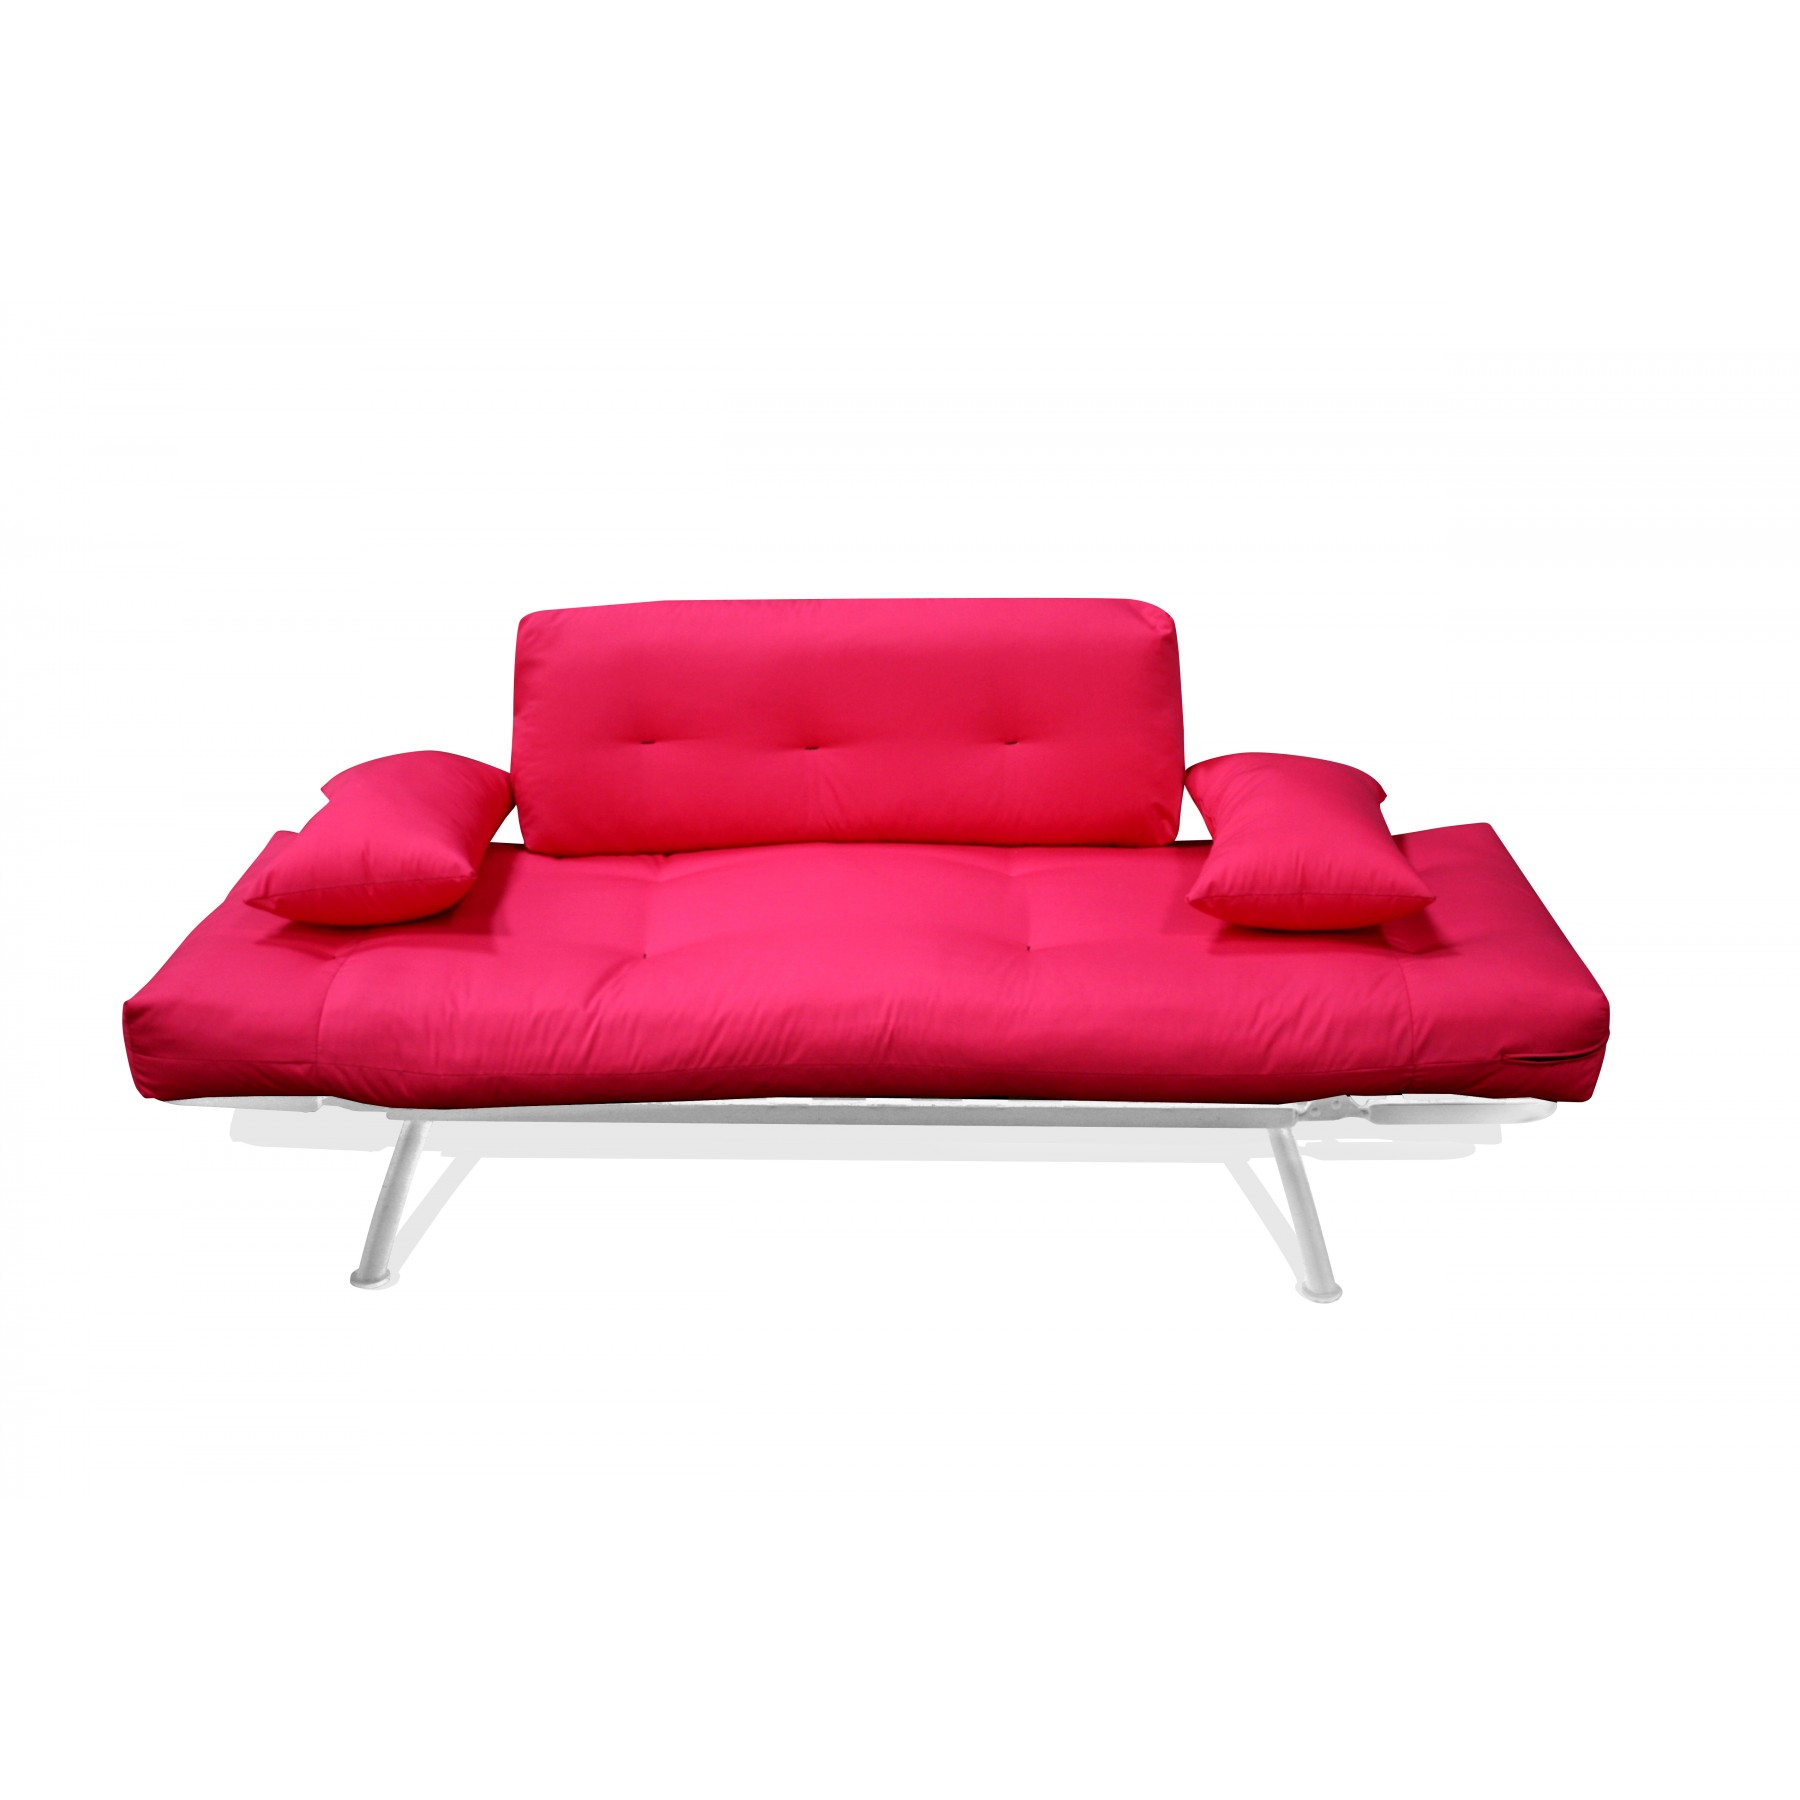 Hot Pink Mali Flex Contemporary